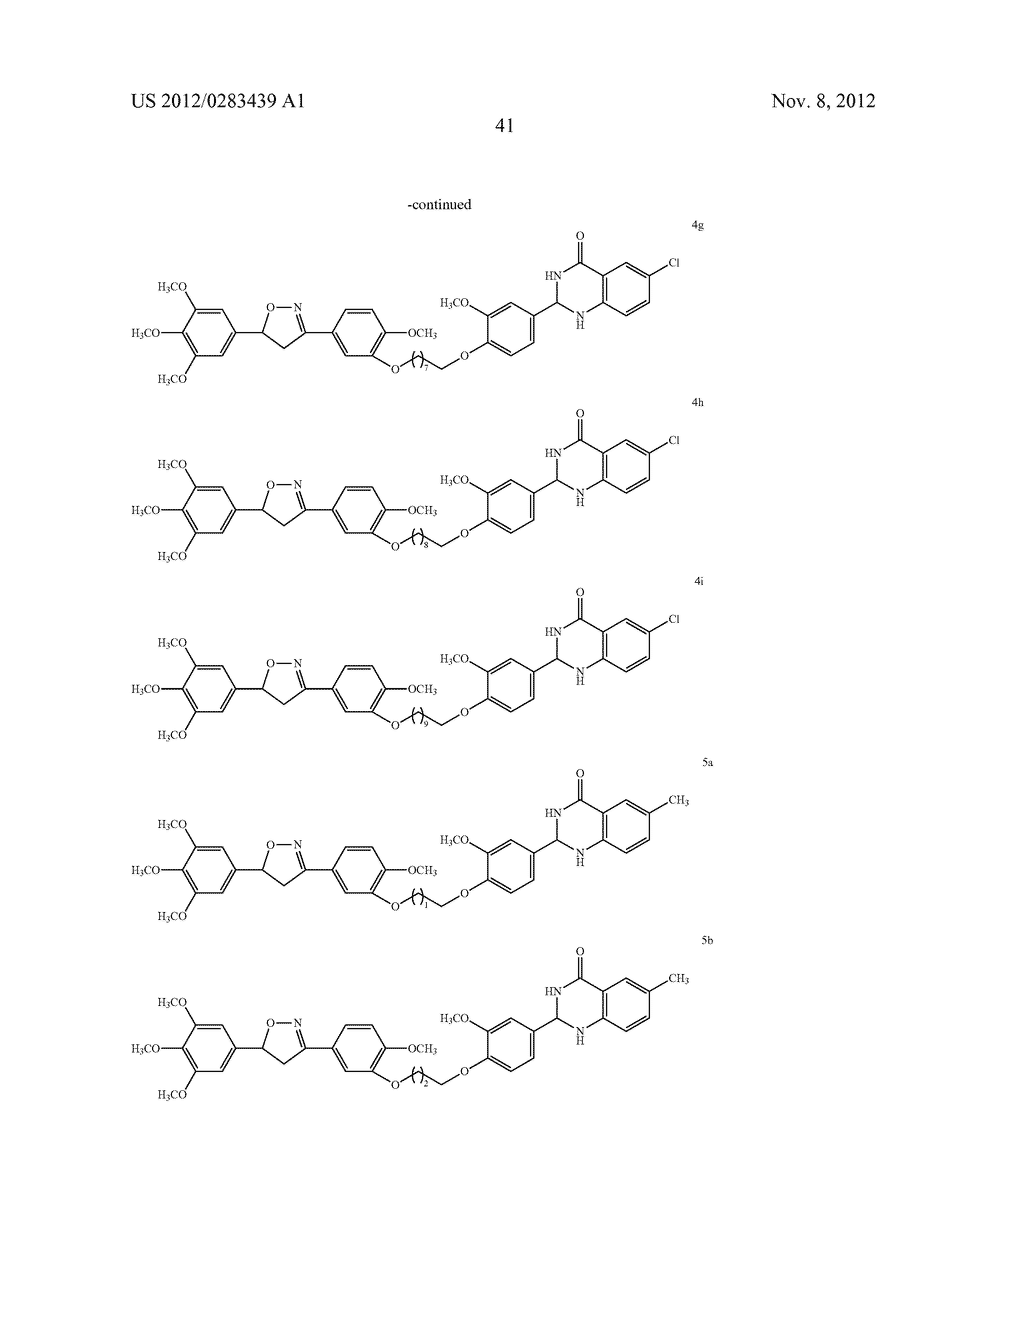 ISOXAZOLE/ISOXAZOLINE/COMBRETASTATIN LINKED DIHYDROQUINAZOLINONE HYBRIDS     AS POTENTIAL ANTICANCER AGENTS AND PROCESS FOR THE PREPARATION THEREOF - diagram, schematic, and image 43